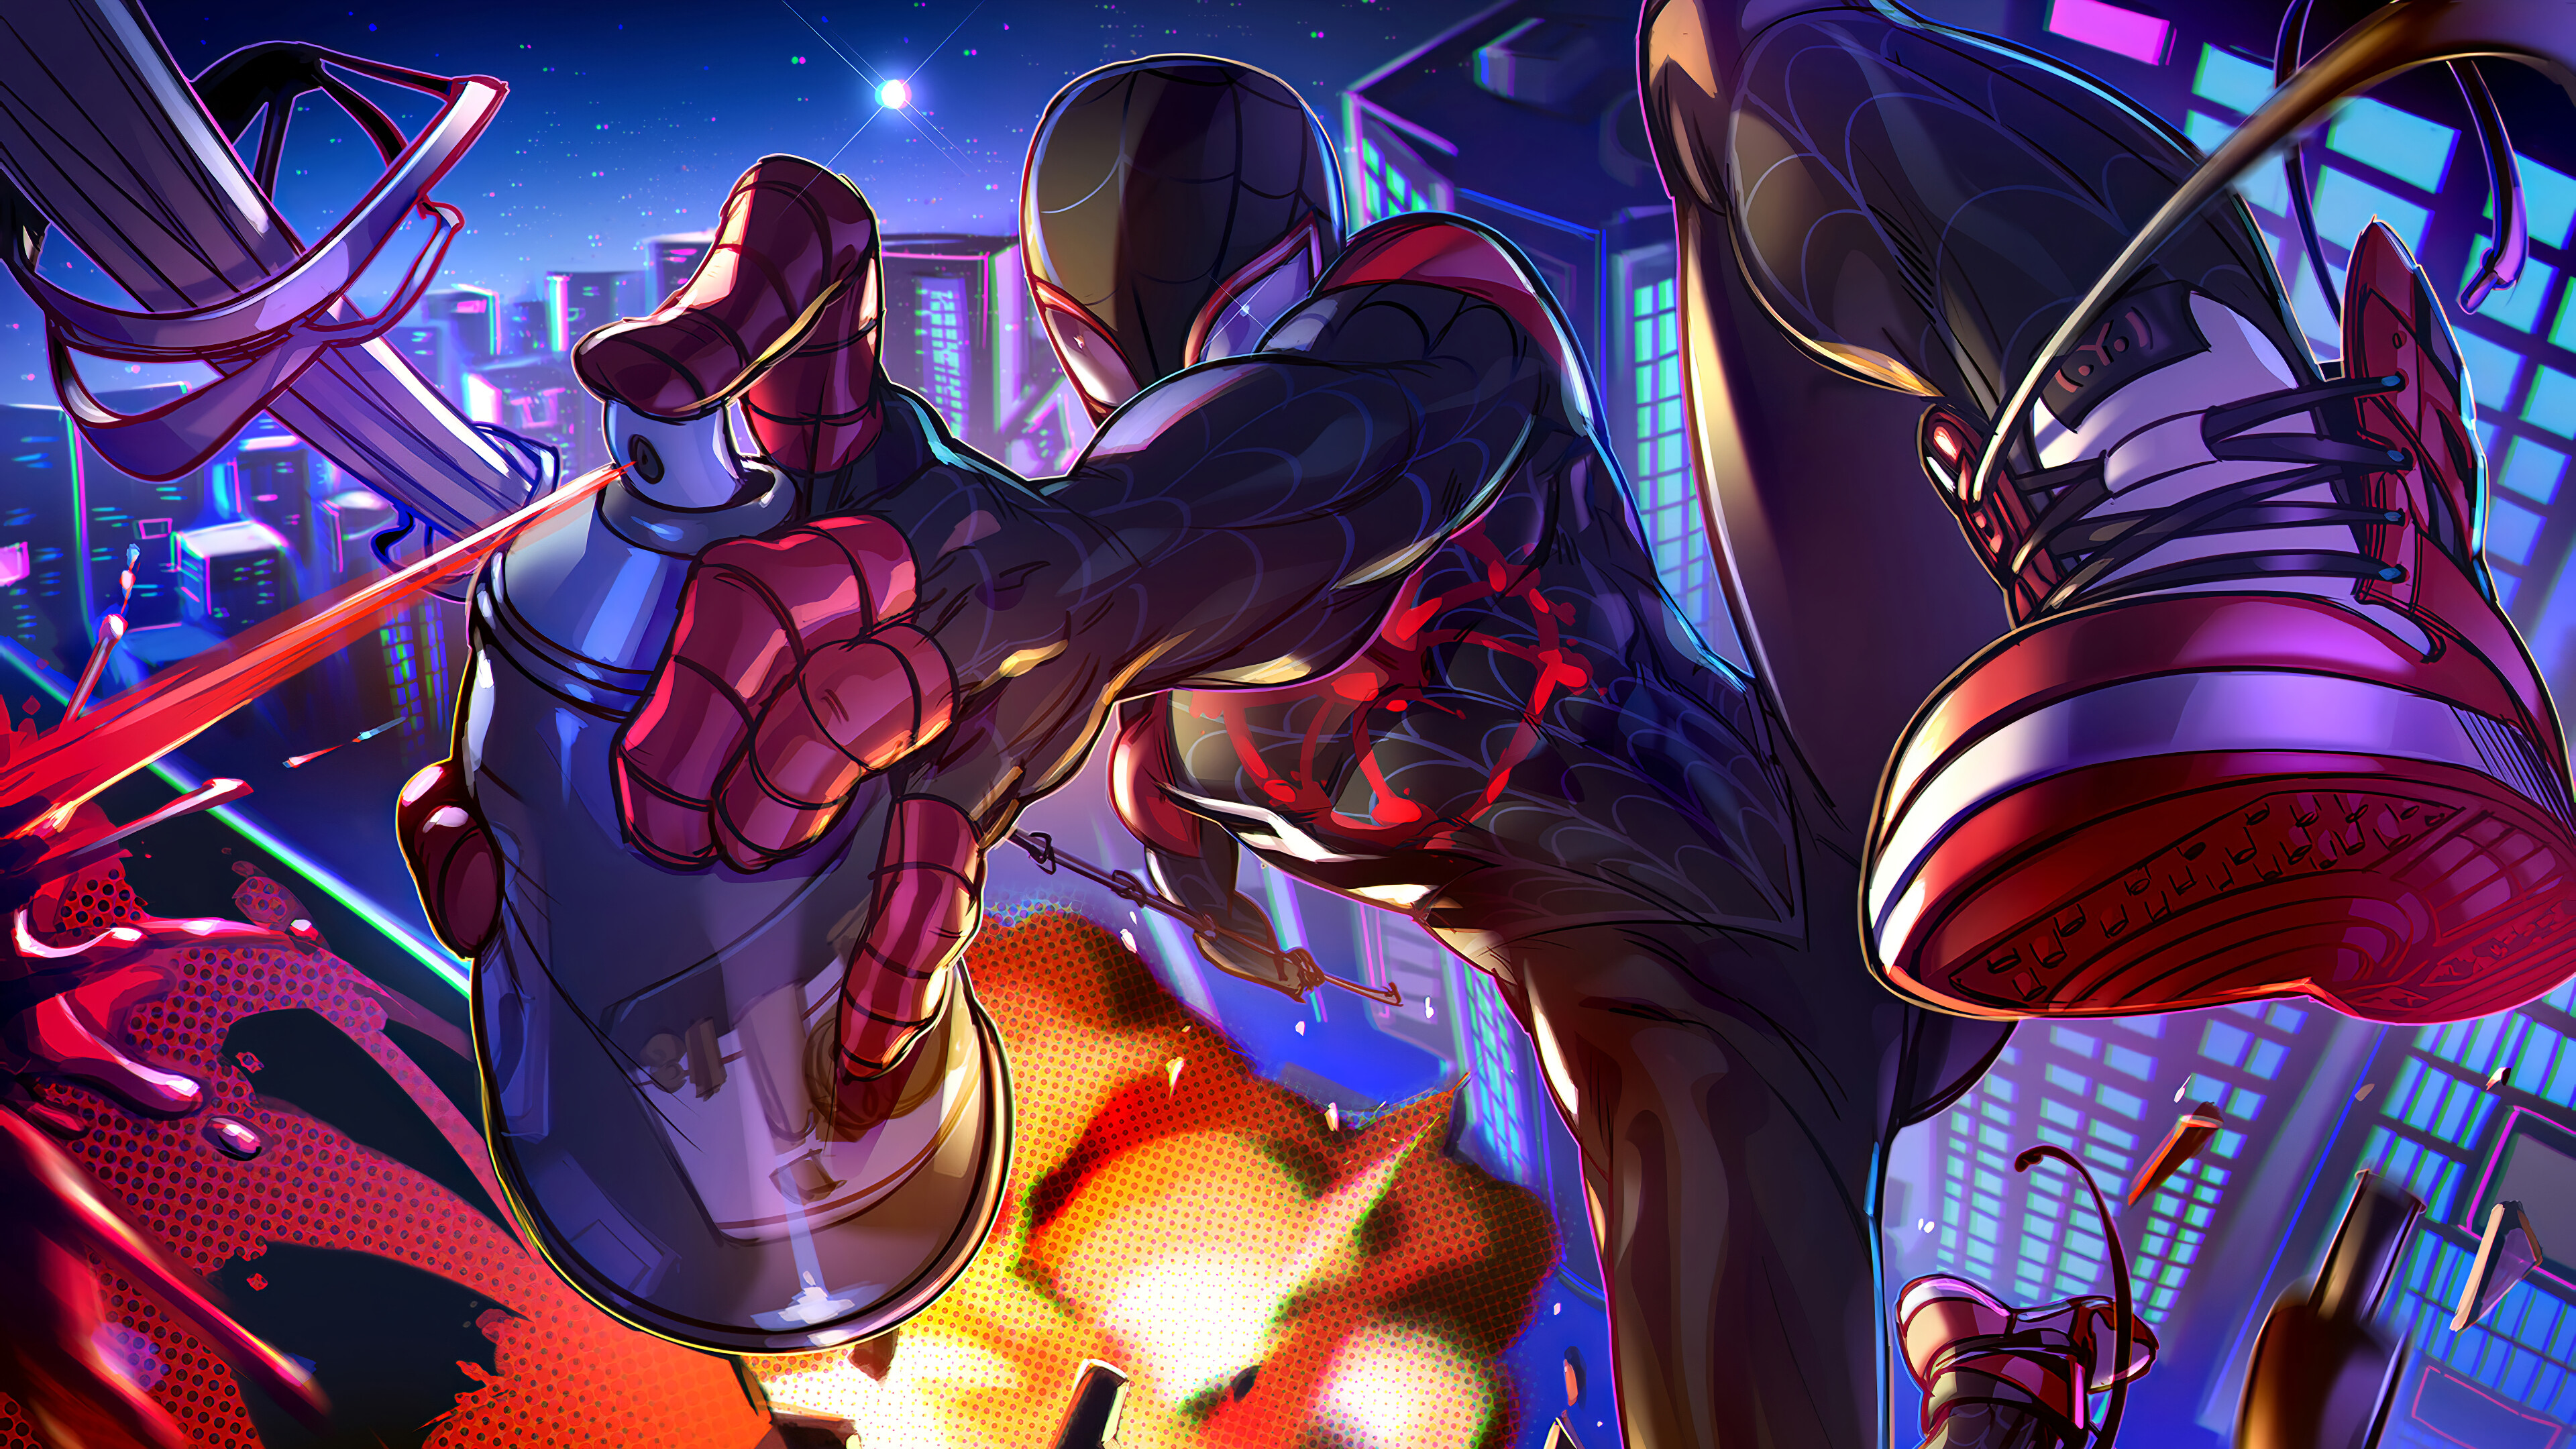 Wallpaper Miles Morales Spiderman into the spiderverse Fanart